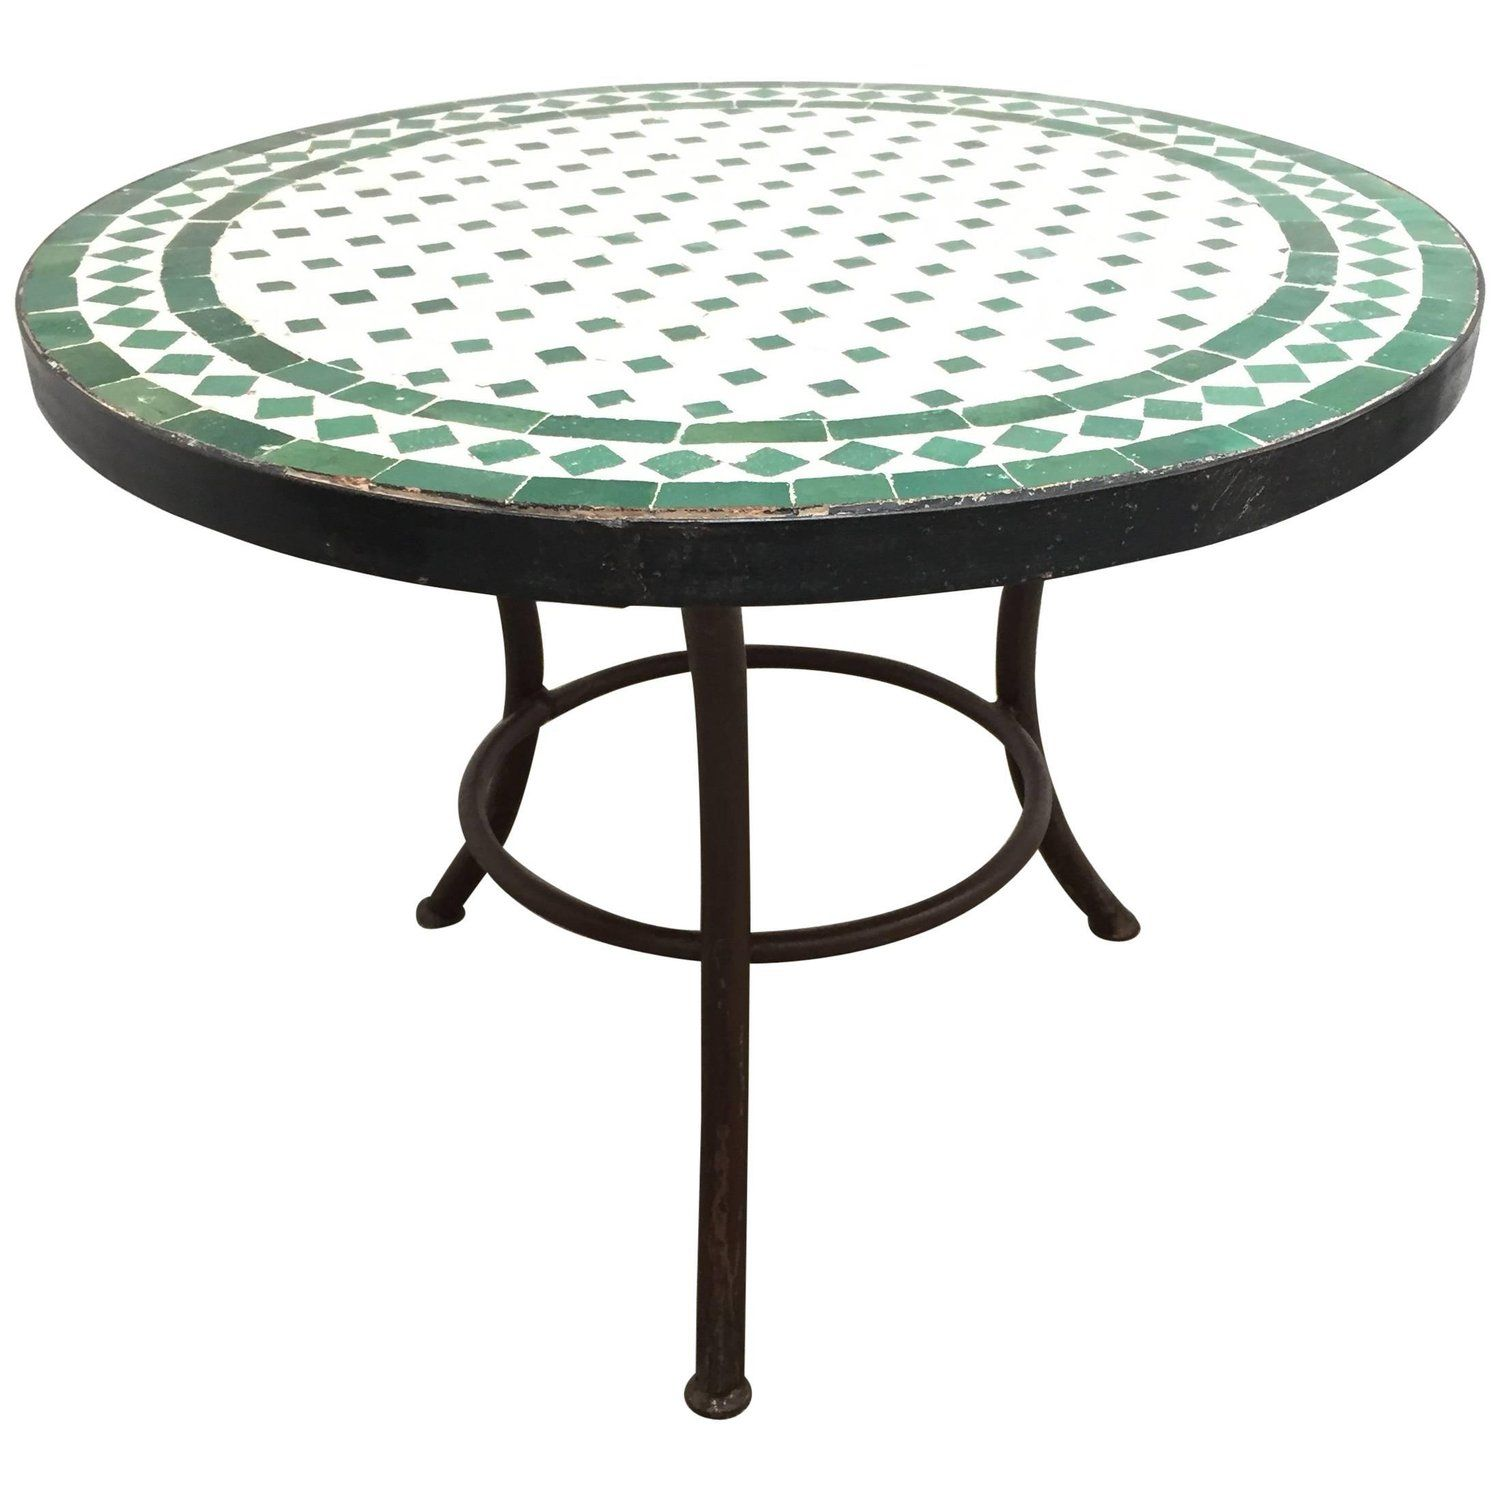 Moroccan Mosaic Tile Outdoor Side Table On Low Iron Base Green And